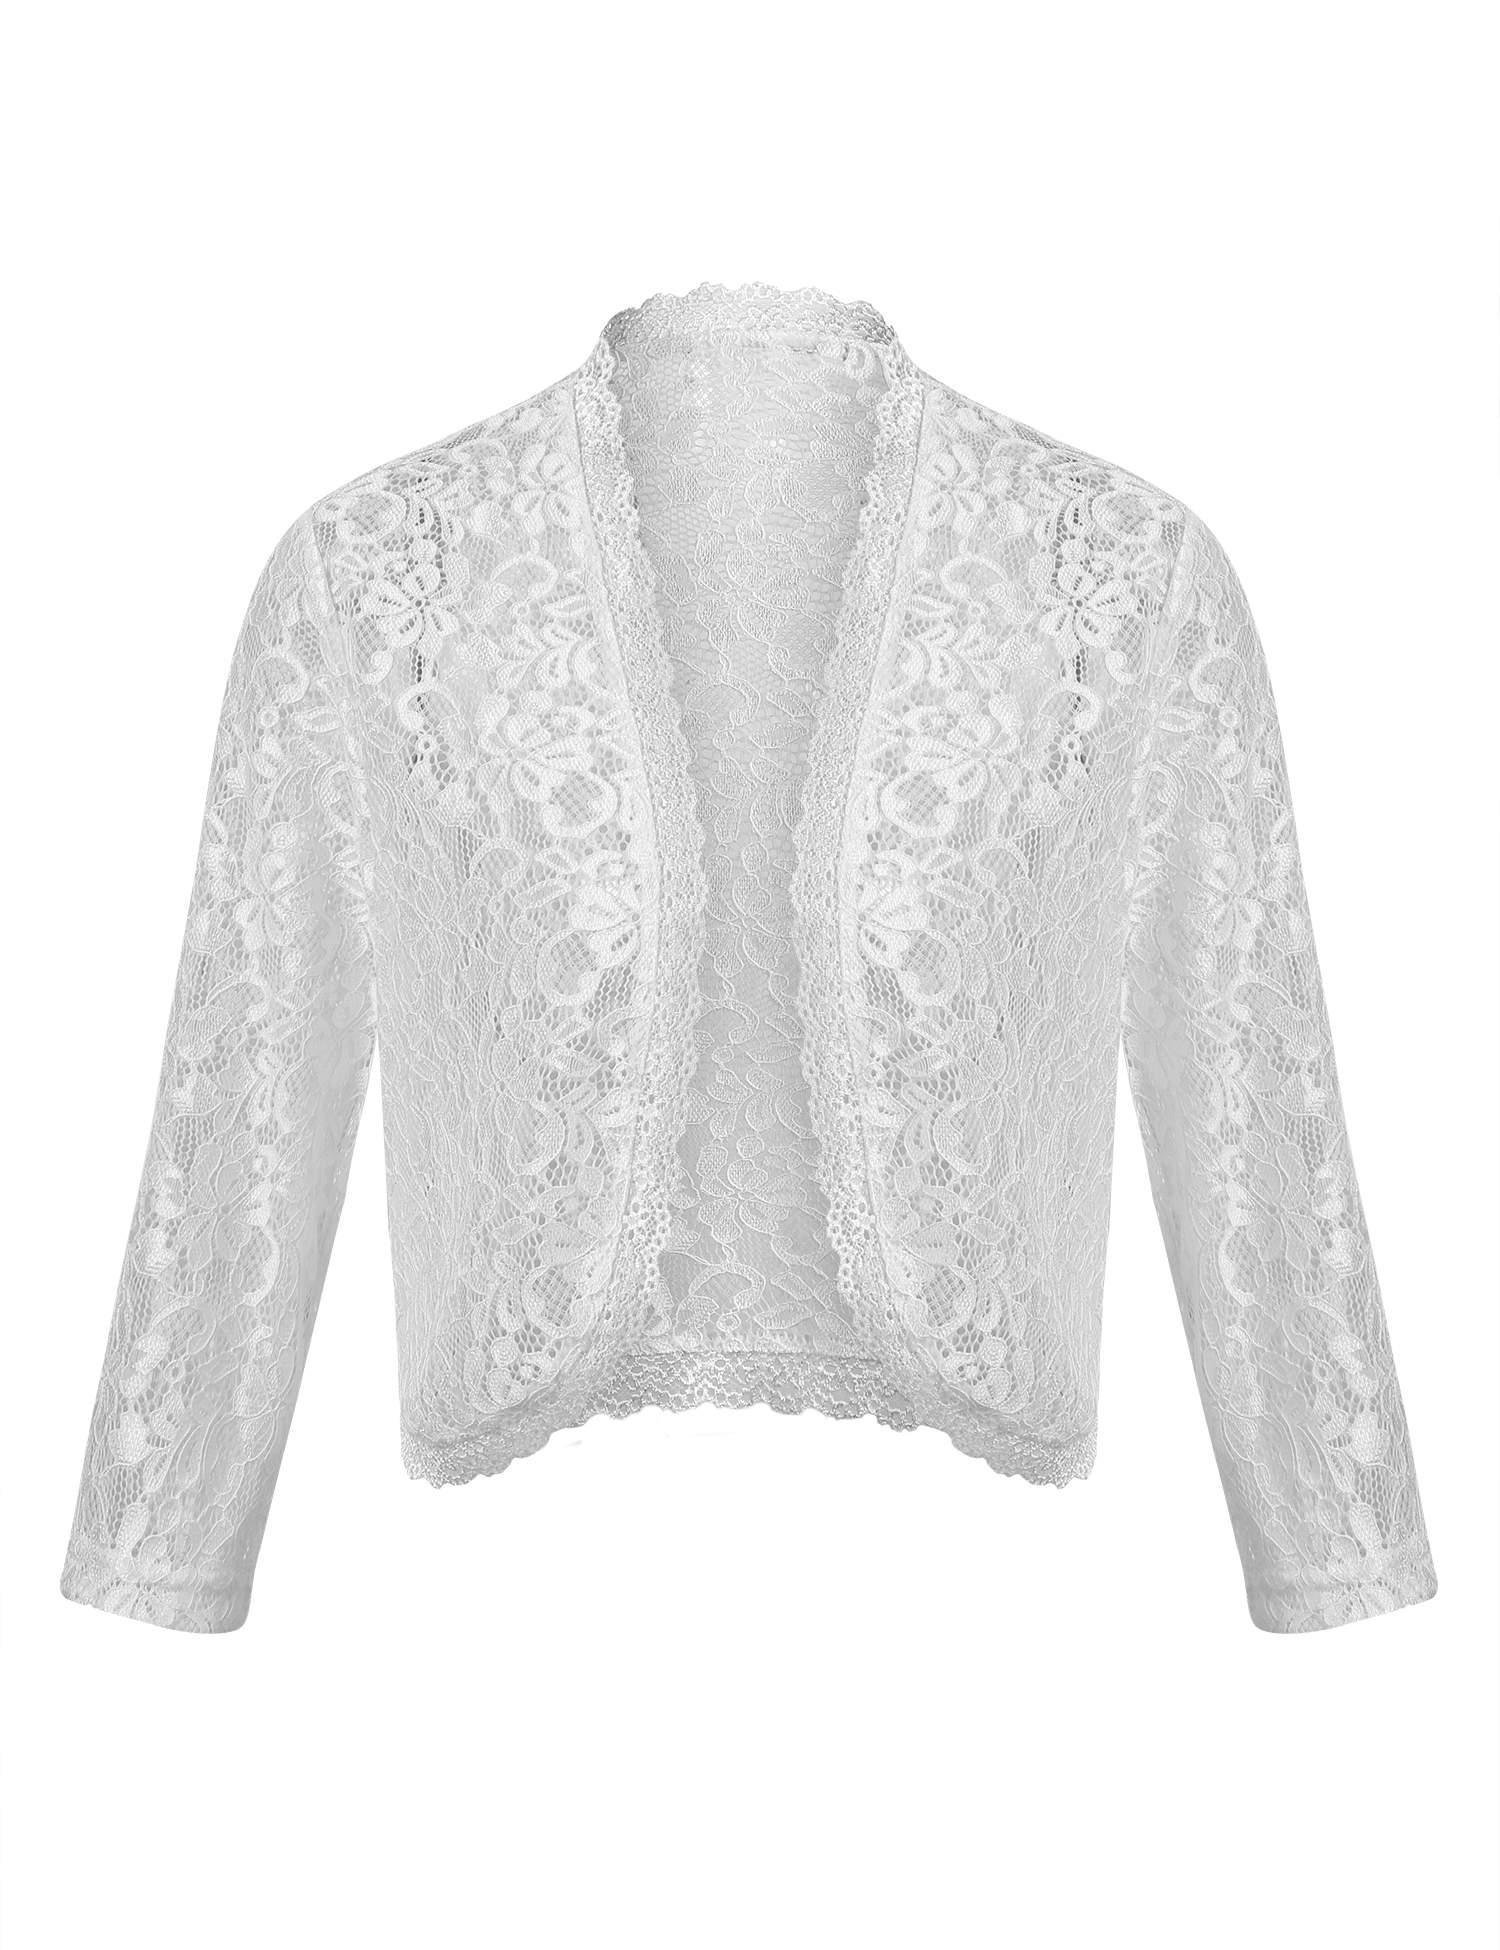 Dealwell Women Elegant Bolero Shrug Long Sleeve Lace Crochet Open Front Cardigan for Dresses (White, XL)